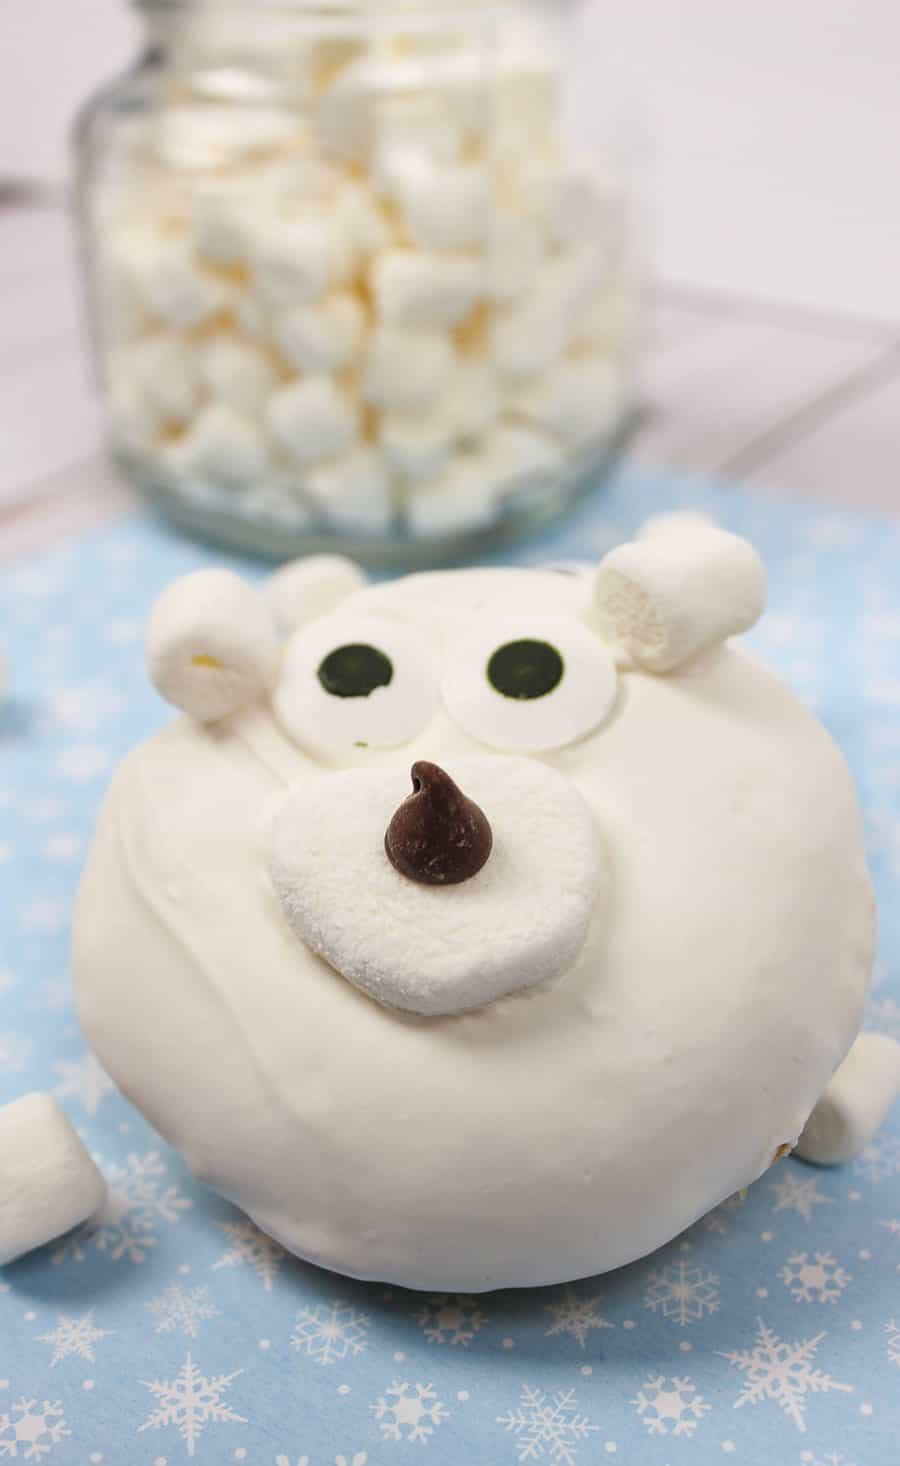 This Polar Bear Donuts recipe uses a box cake mix for ease. They will be the highlight of a school or activity holiday party, or bagged for exchanges